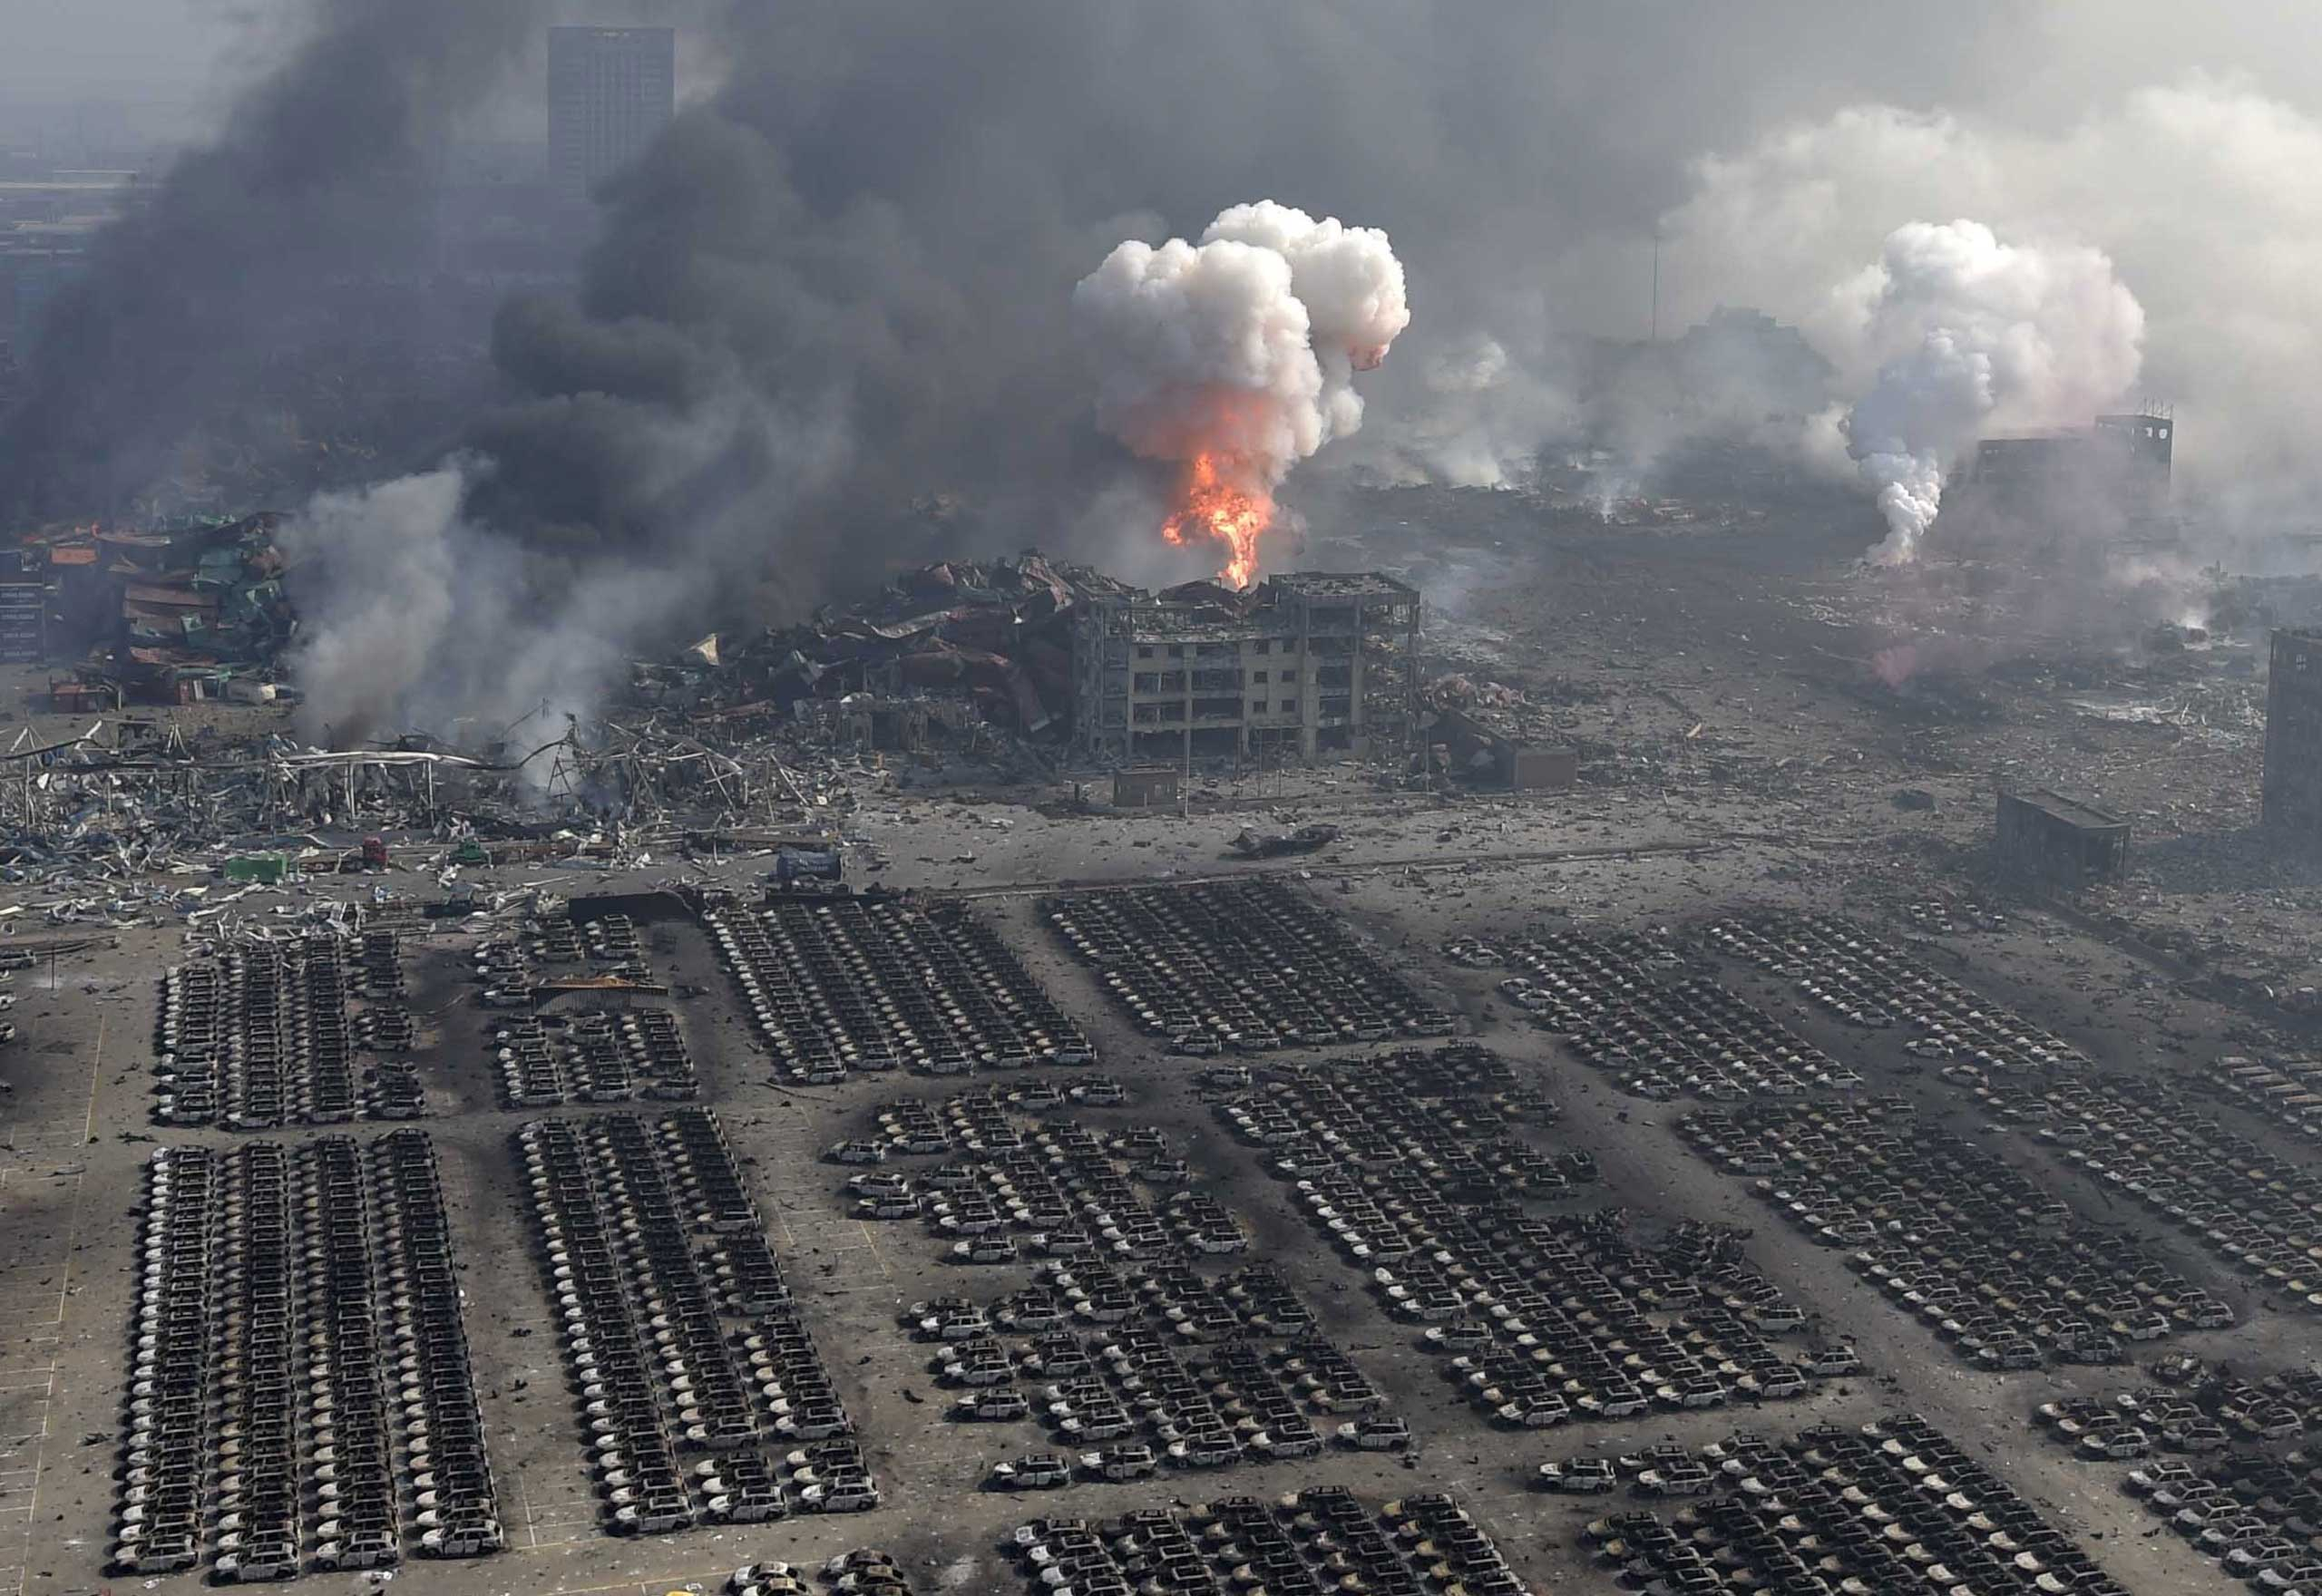 The site of huge explosions in Binhai New Area in Tianjin, north China, on Aug. 13, 2015.